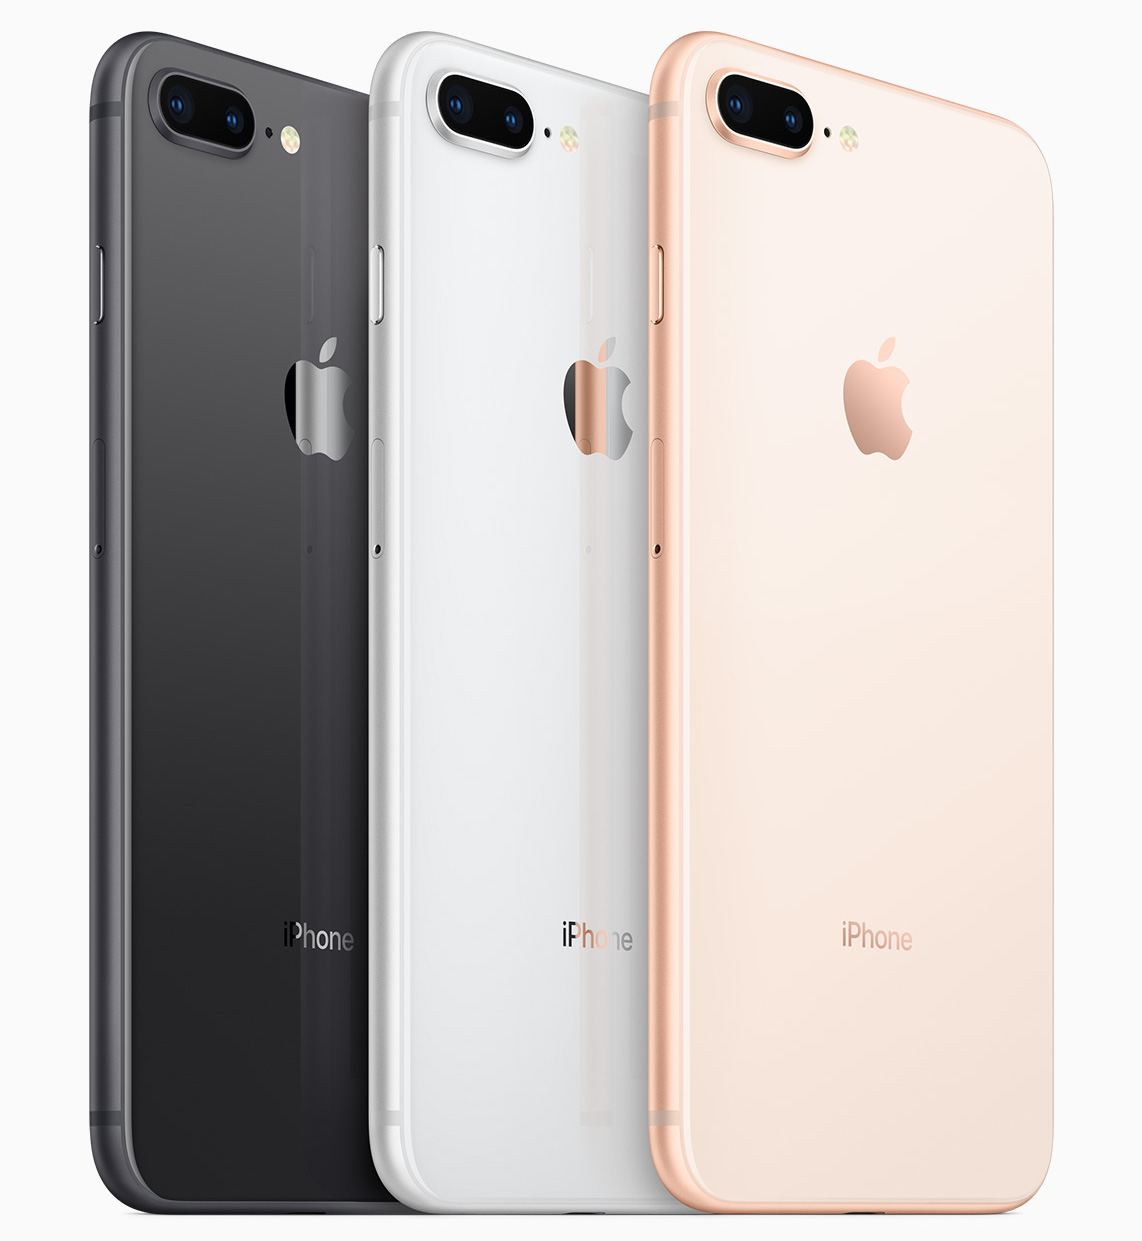 iPhone 8 und iPhone 8 Plus (Bildquelle: Apple Produktbild)